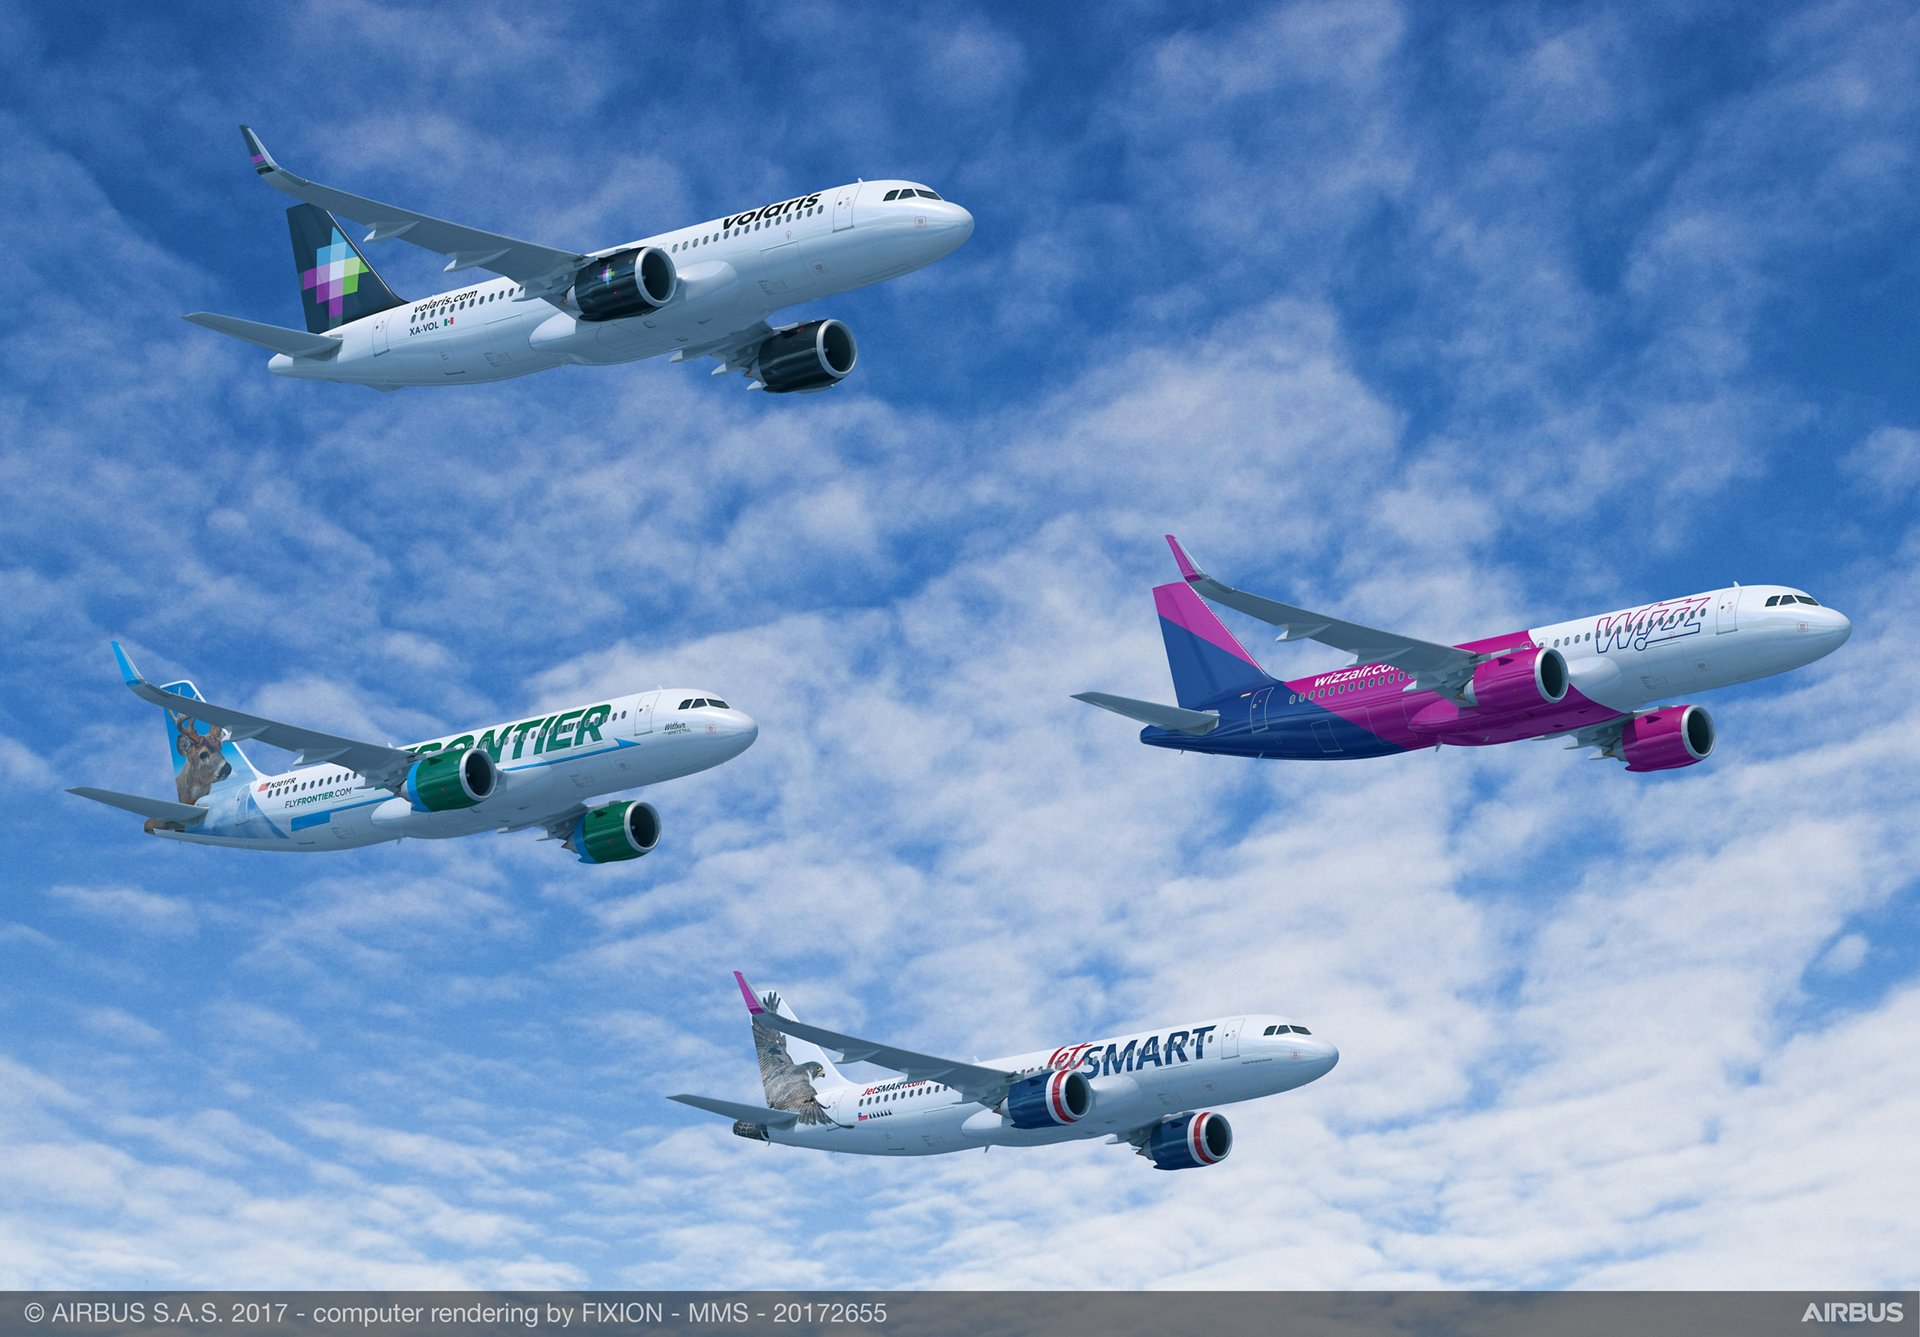 Indigo Partners has finalized agreements for the purchase of 430 A320neo Family aircraft – the largest commercial jetliner order in Airbus history – for its four portfolio airlines: Frontier Airlines (United States), JetSMART (Chile), Volaris (Mexico) and Wizz Air (Hungary)